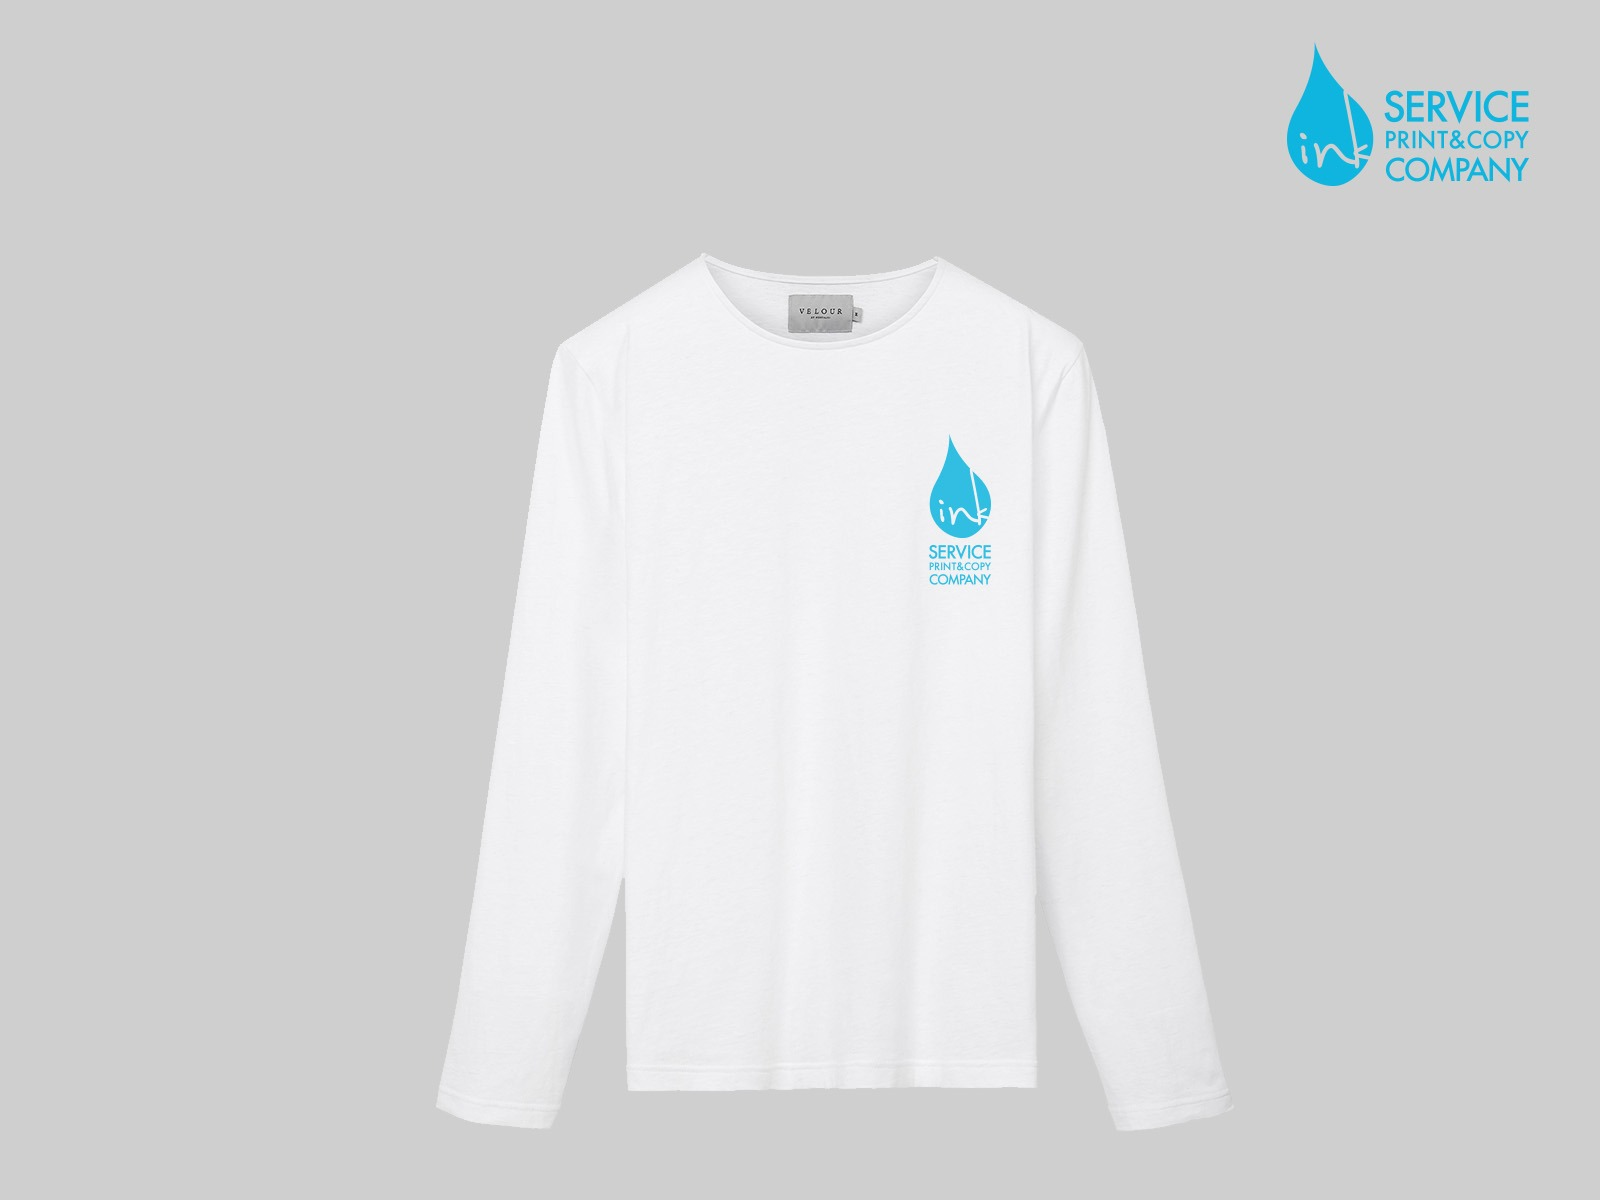 Print on long sleeve t-shirts (White)